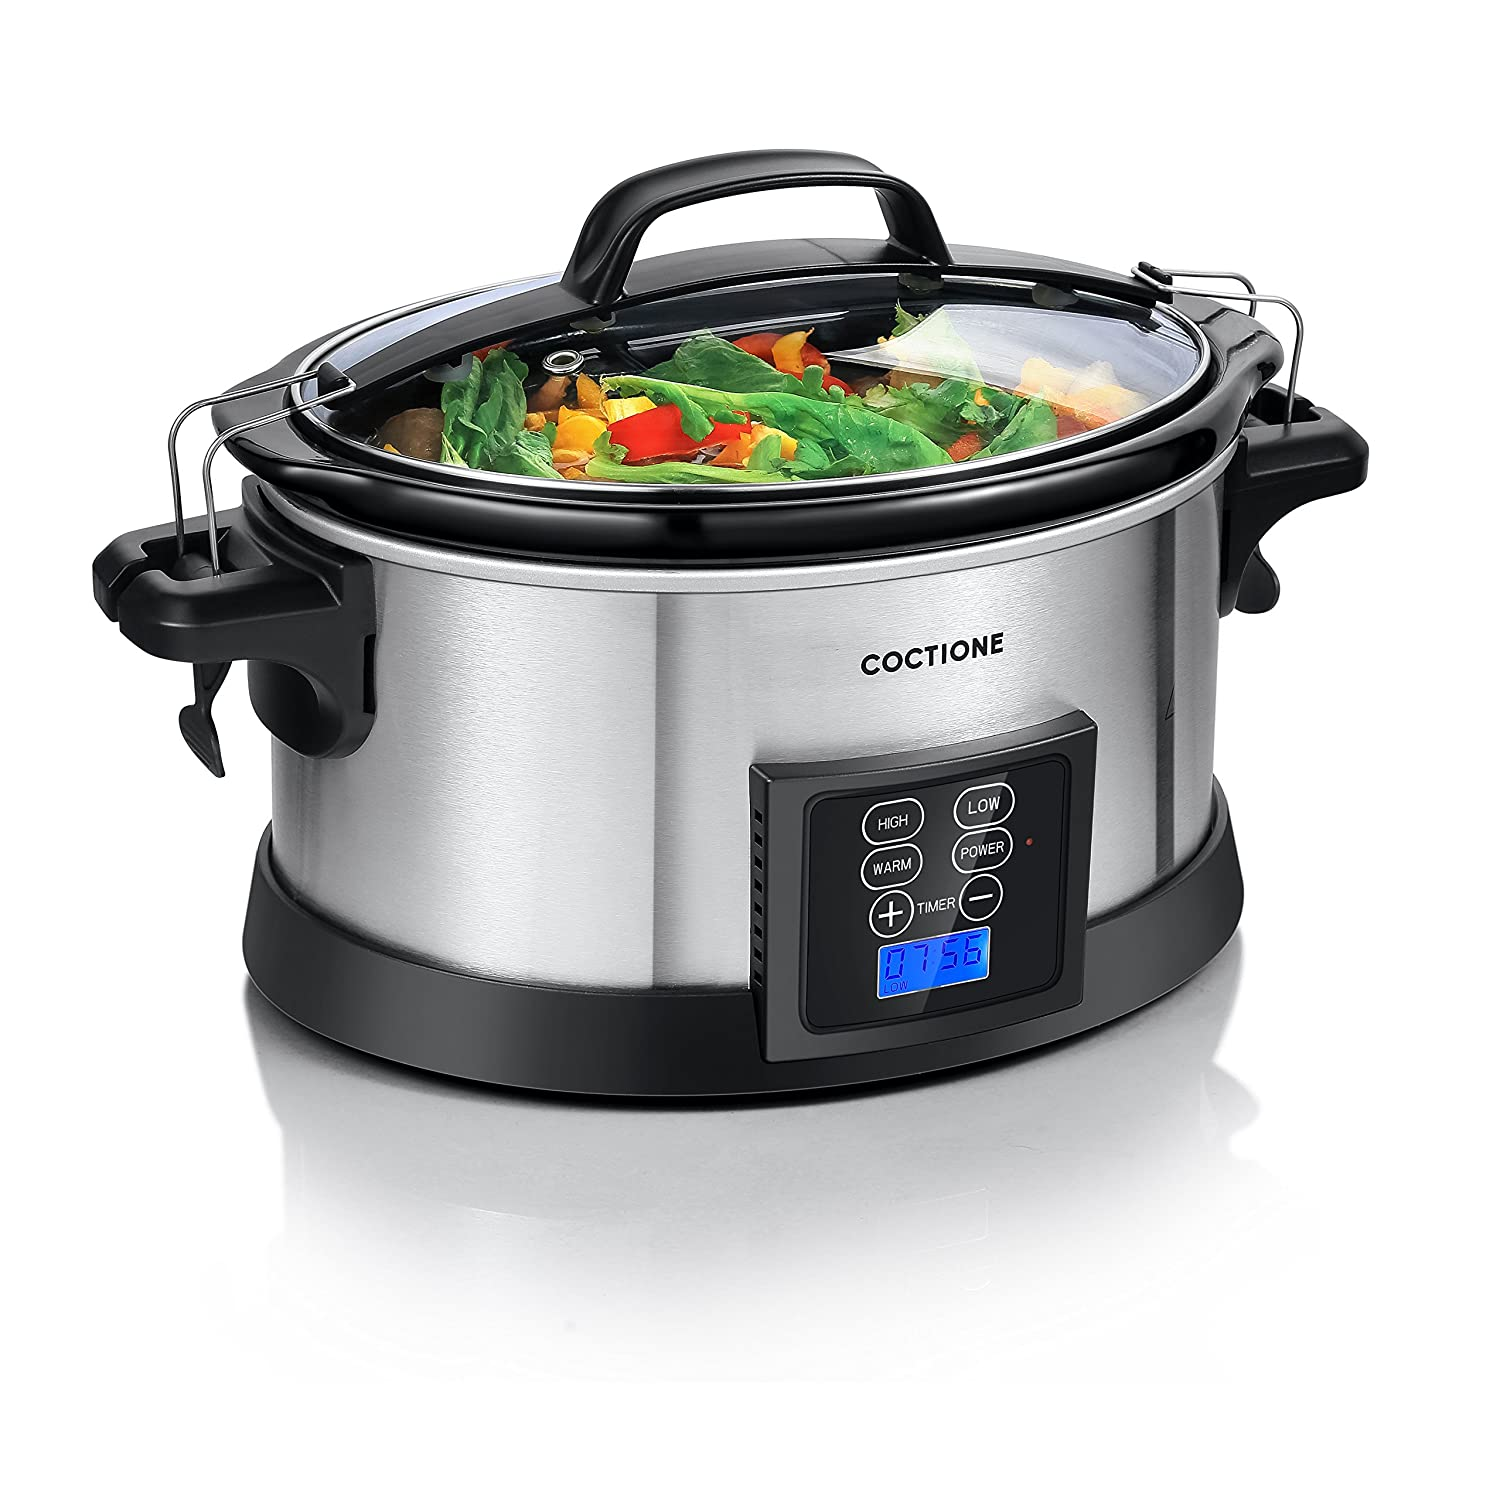 COCTIONE Slow Cooker 6 Quart Oval Shaped Carry Cooker, Electric Programmable LCD Digital Timer Auto Shut Off Cook with Removable Ceramic Cooking Pot Latch Lock Lid and Stainless Steel Finish